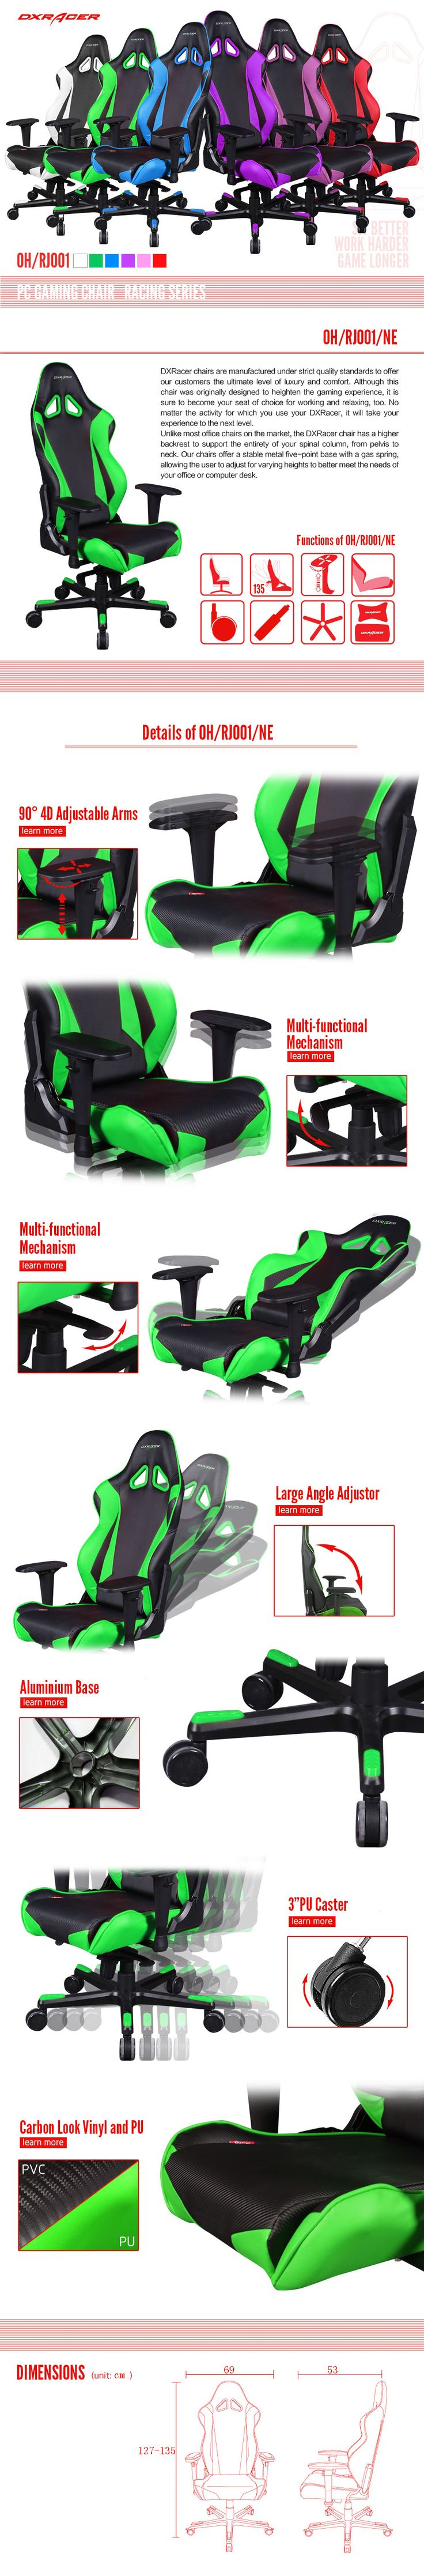 DXRacer ficial Home Page Best gaming chair in the world Best PC chair in the world Best gaming desk in the world